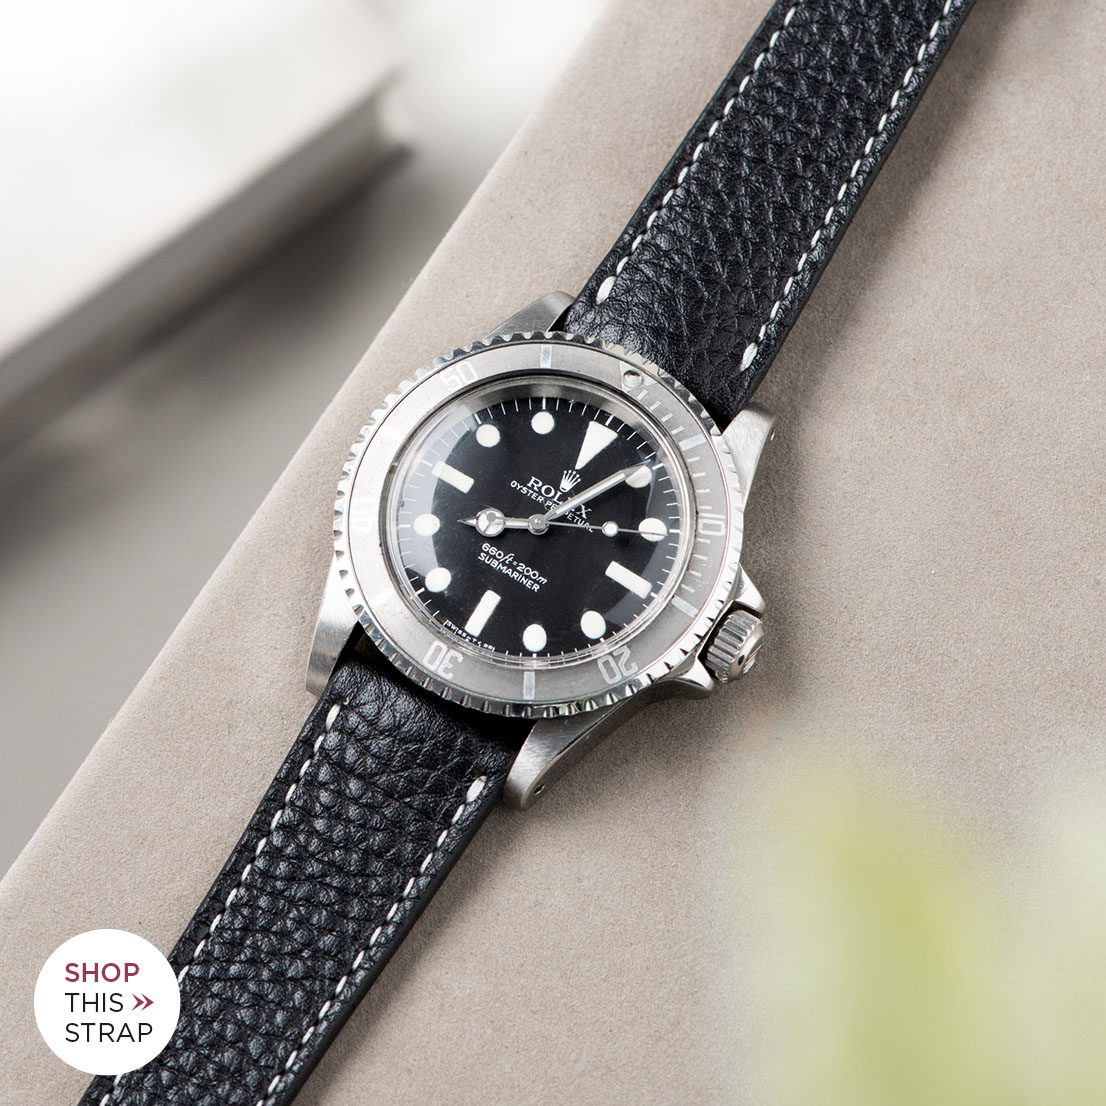 Bulang and Sons_Strap Guide_Rolex Submariner 5513 Faded_RICH BLACK CREME STITCH LEATHER WATCH STRAP